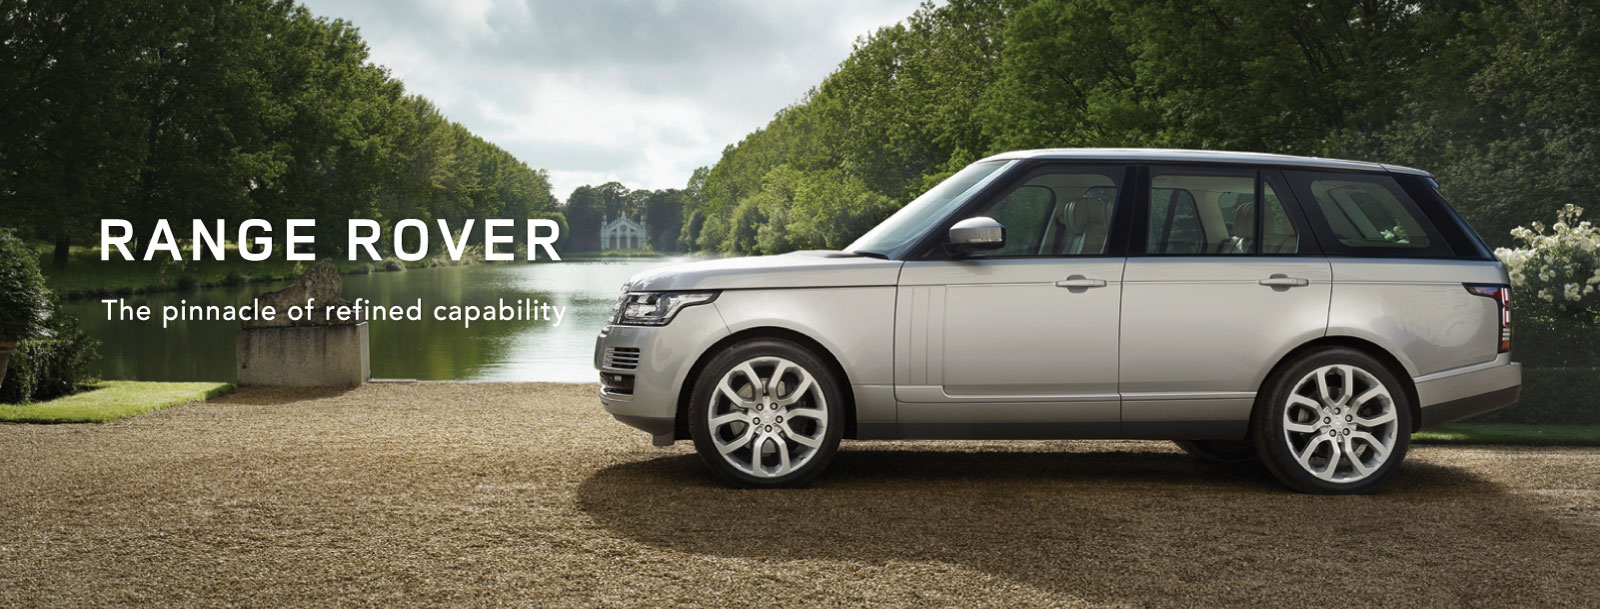 Land Rover Range Rover Deals New Land Rover Range Rover Cars For